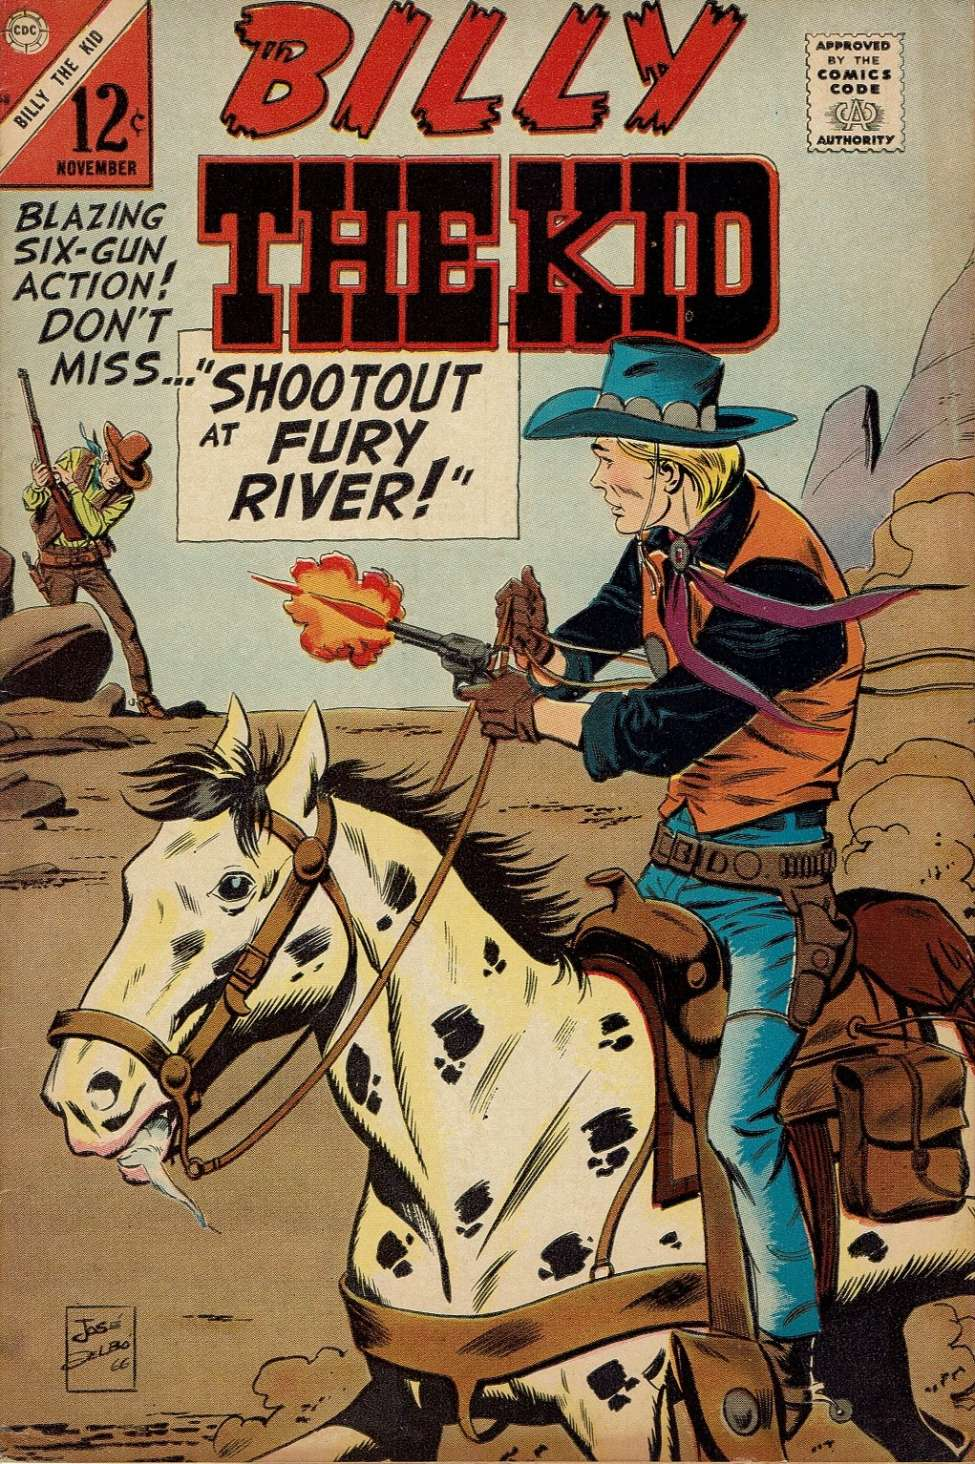 Comic Book Cover For Billy the Kid #58